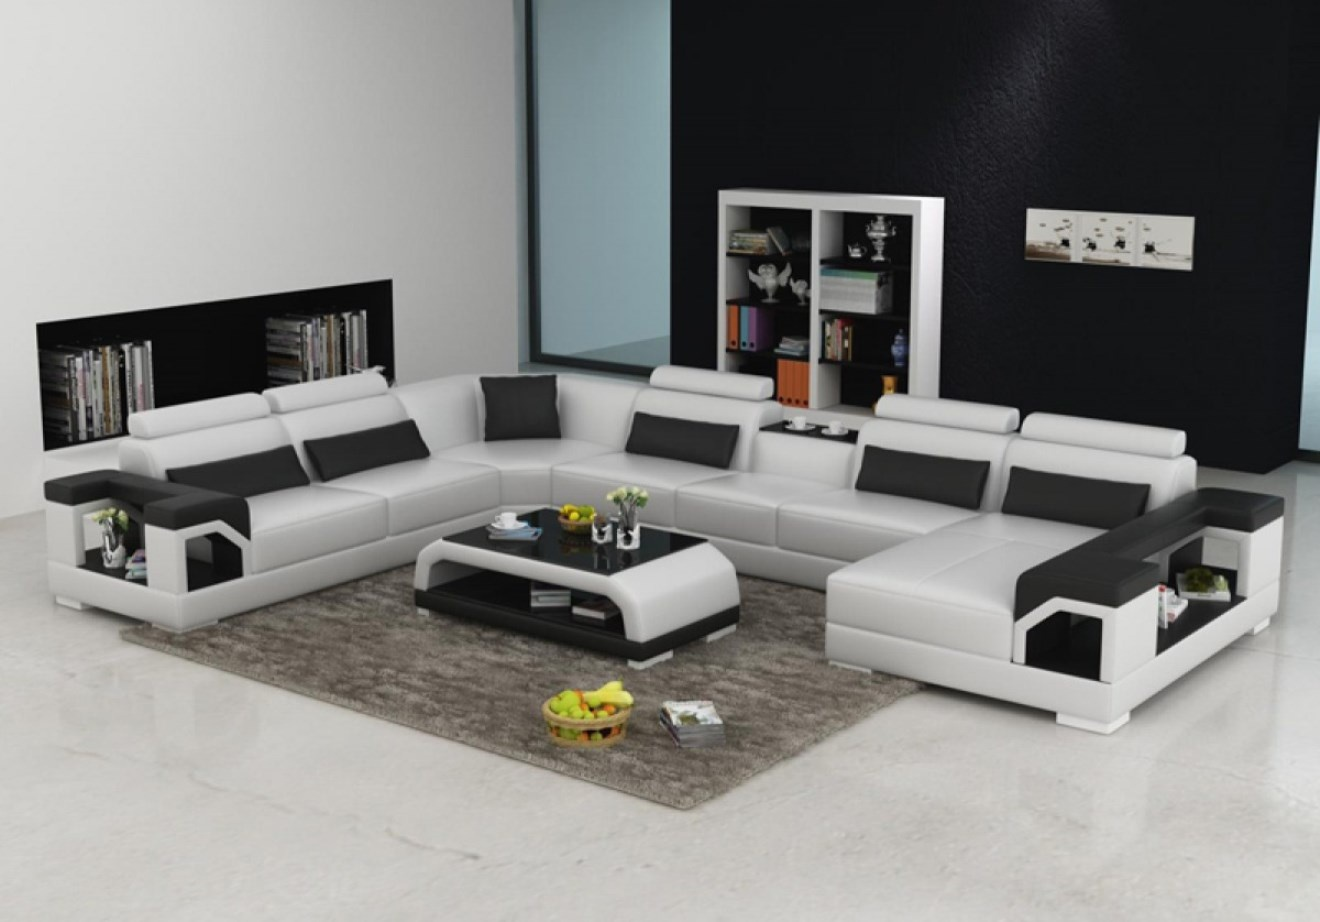 canap d angle 7 places royal sofa id e de canap et. Black Bedroom Furniture Sets. Home Design Ideas